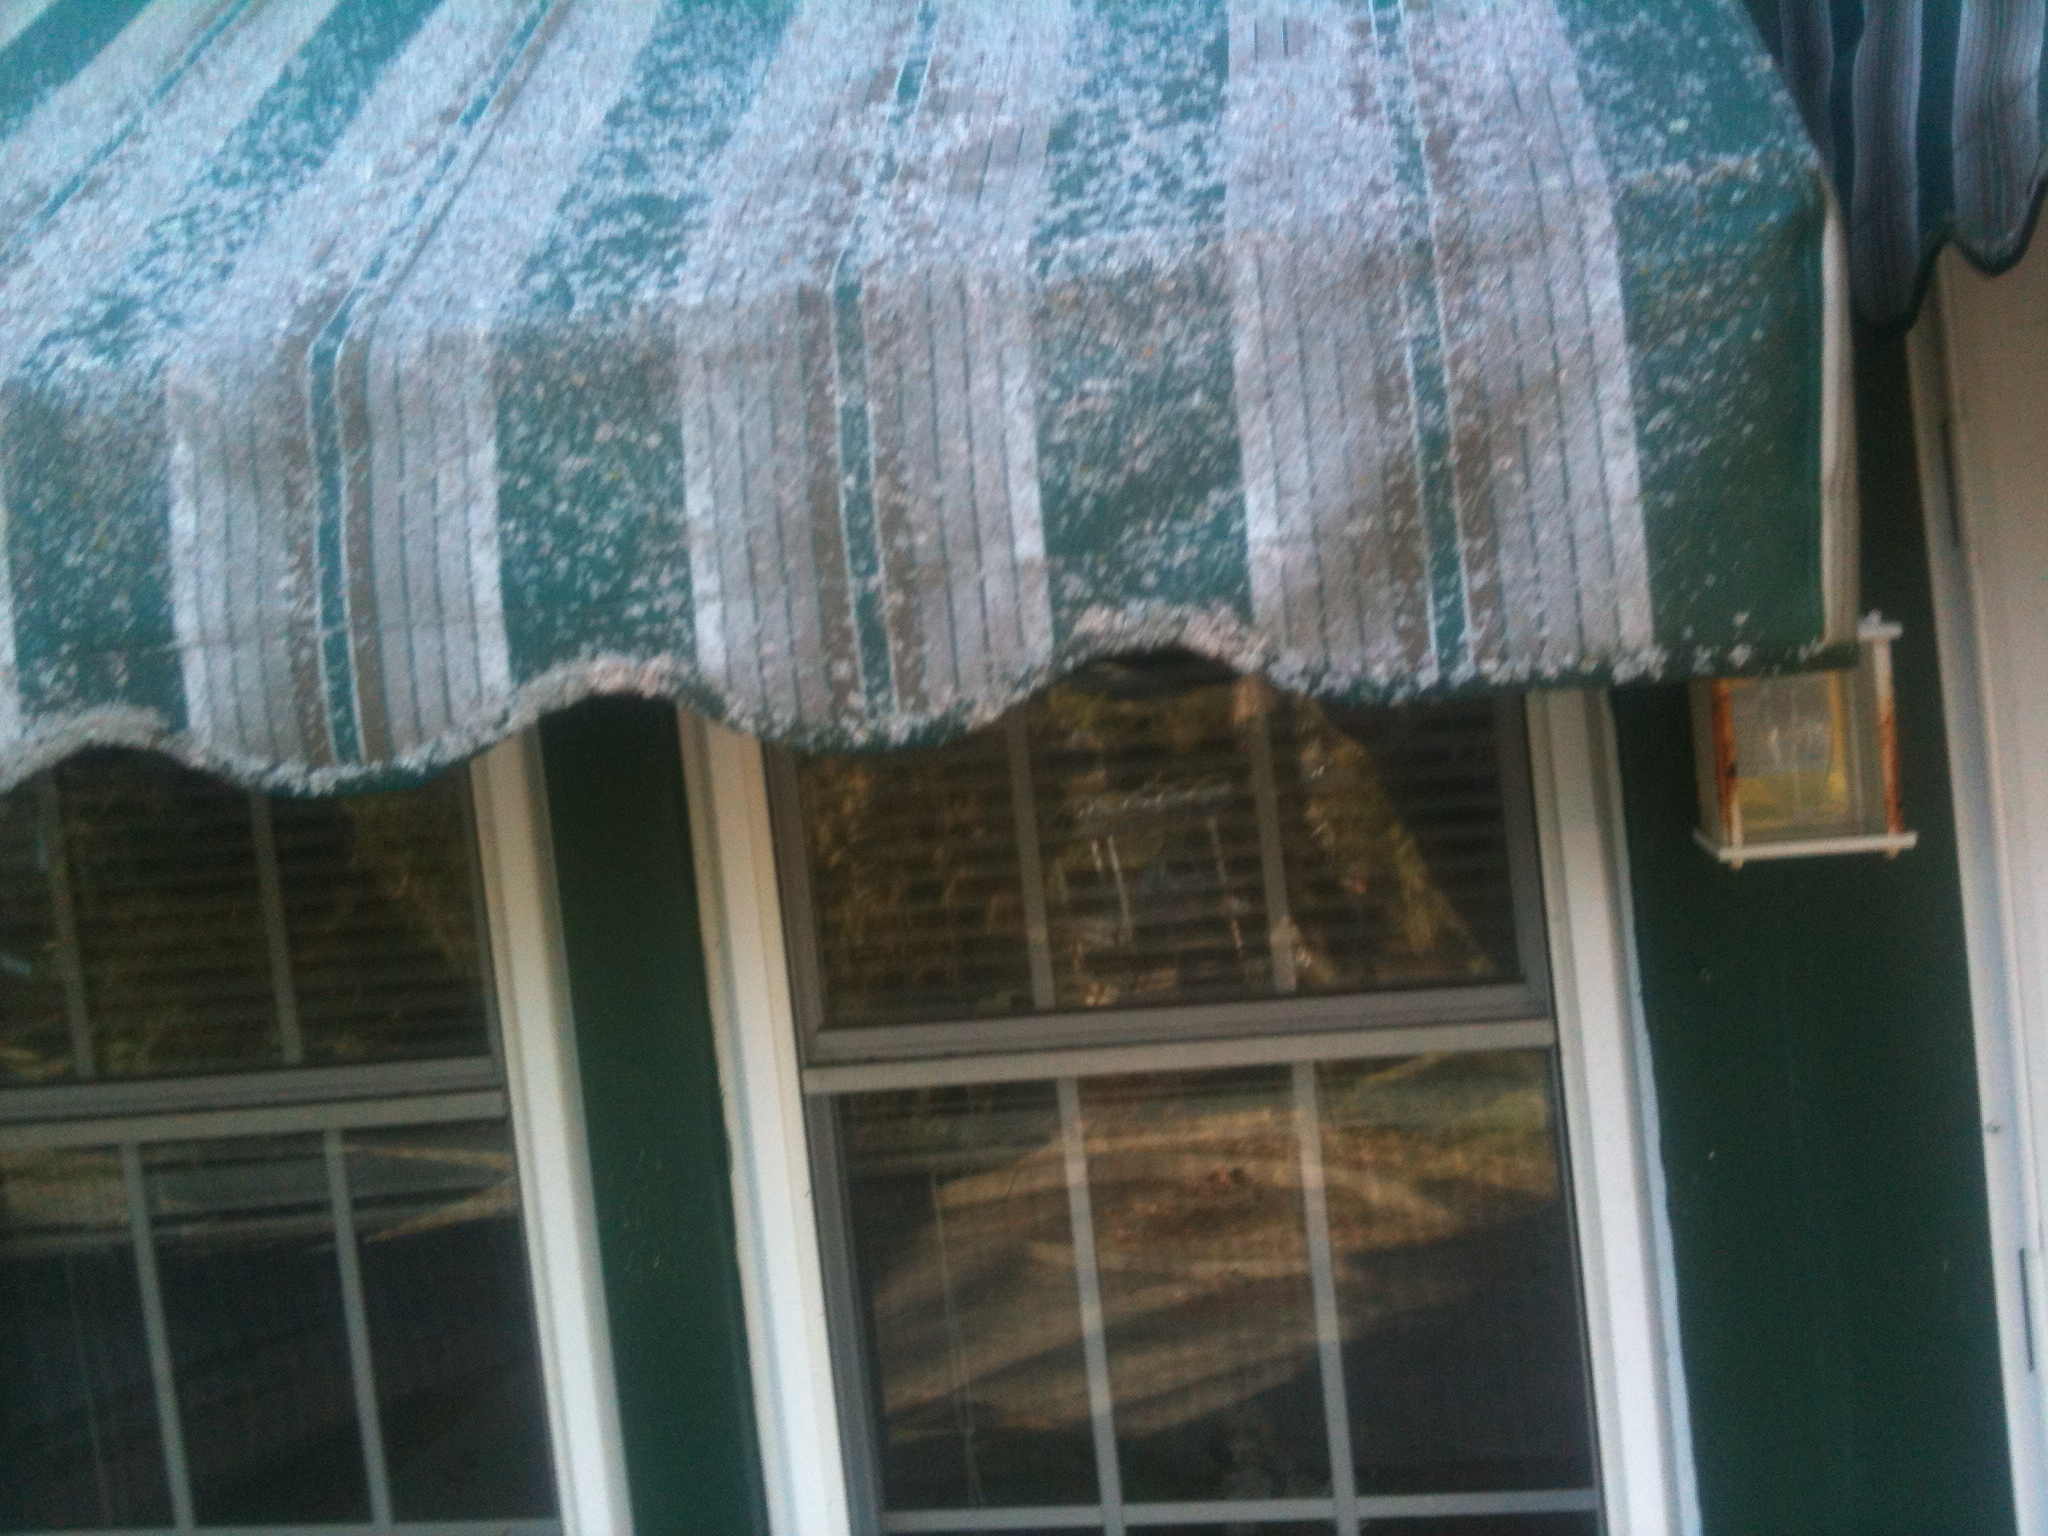 Awning Cleaning In Delavan Wisconsin